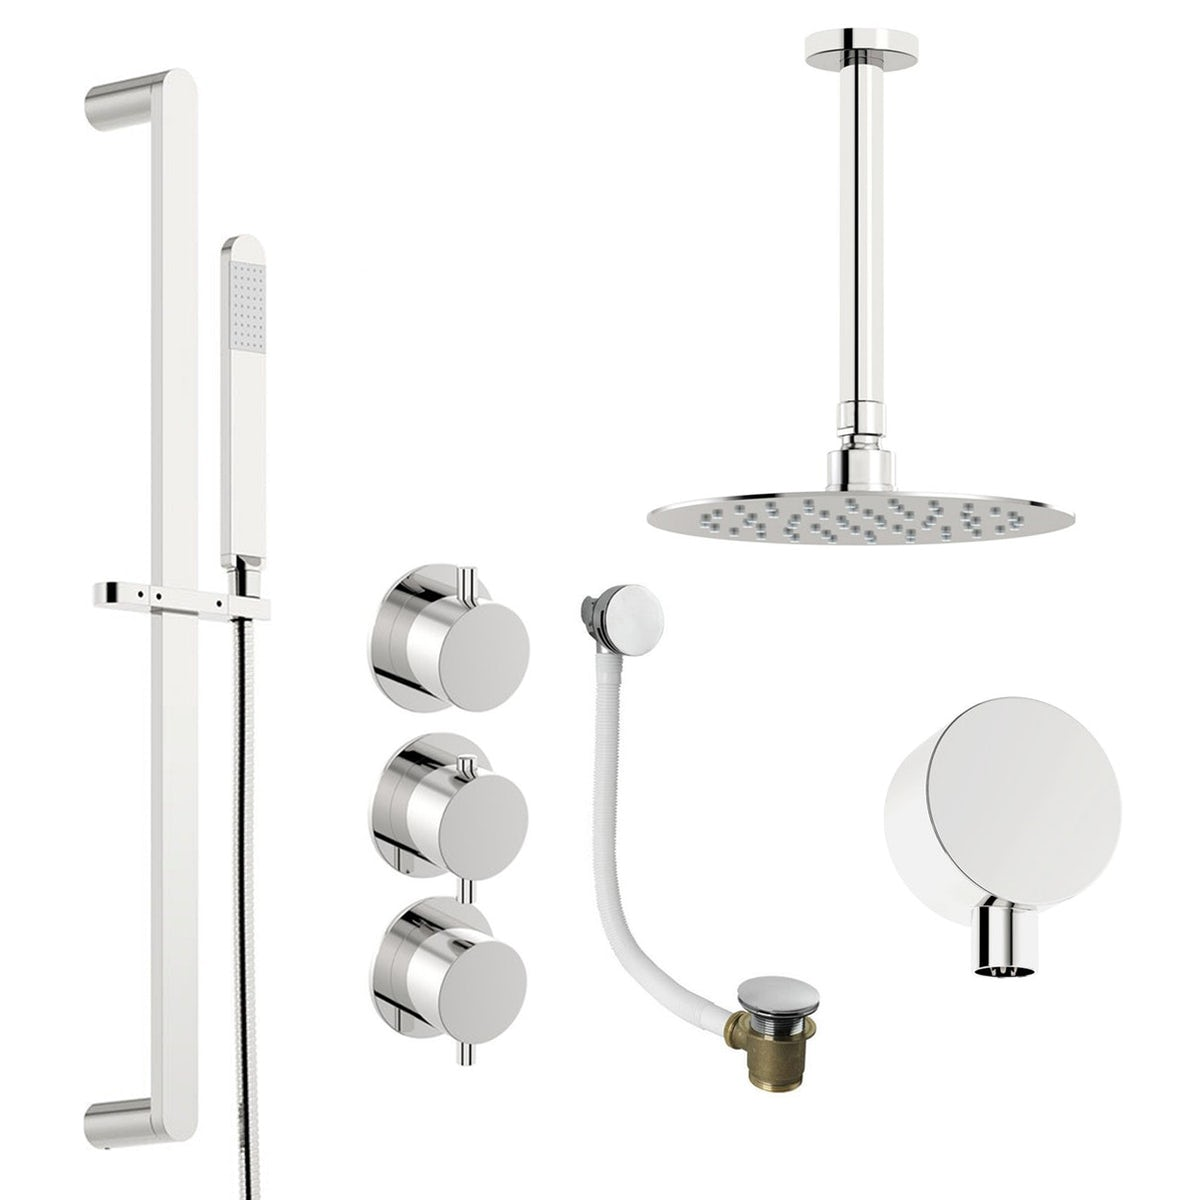 Mode Hardy thermostatic shower valve with complete ceiling shower bath set